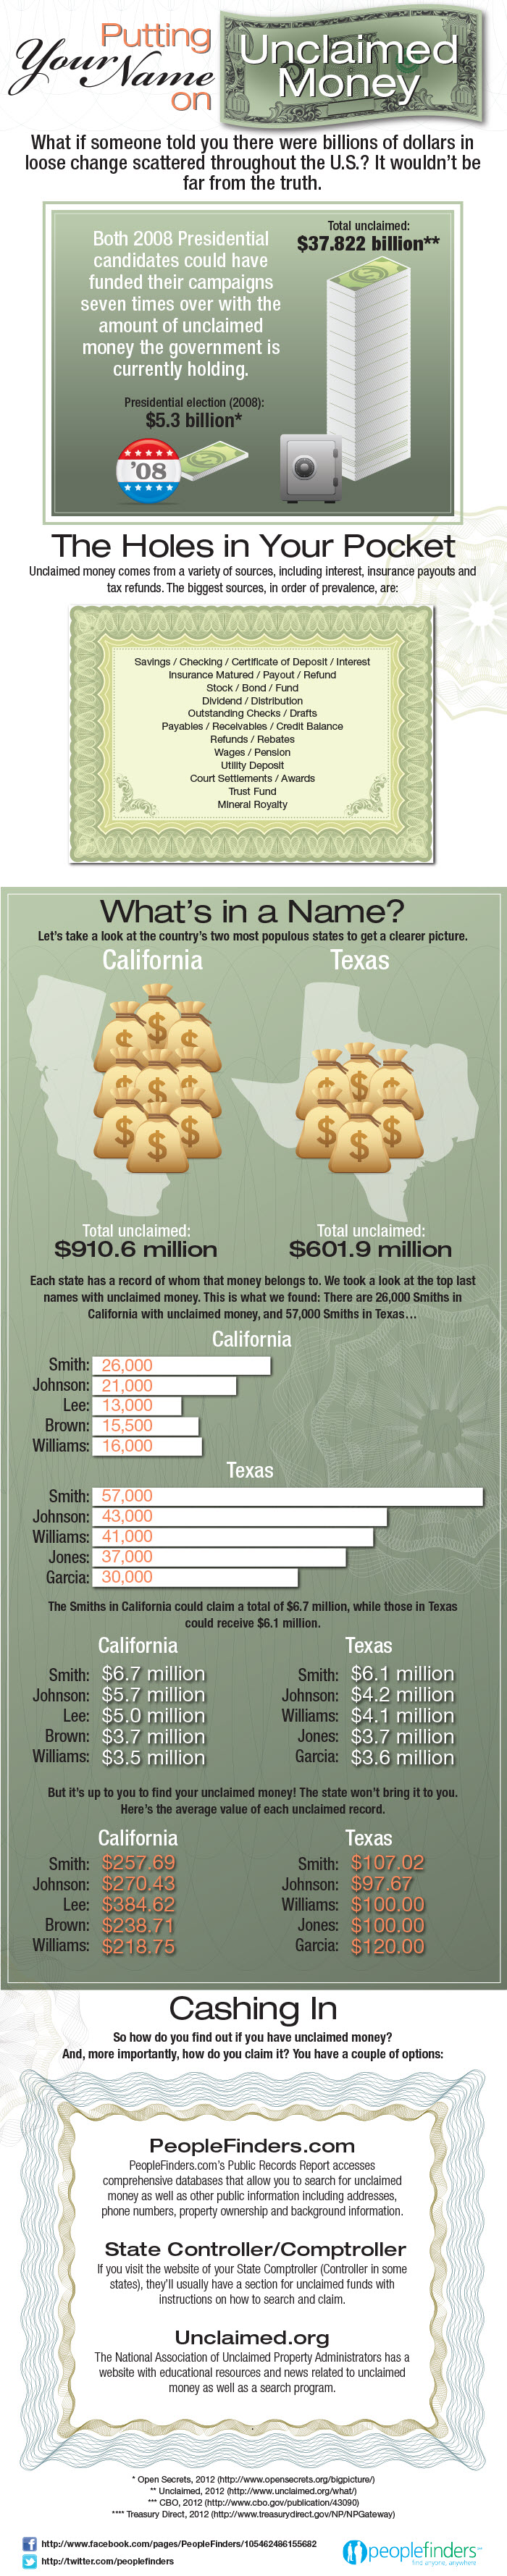 Putting Your Name on Unclaimed Money - An Infographic from Infographics Showcase